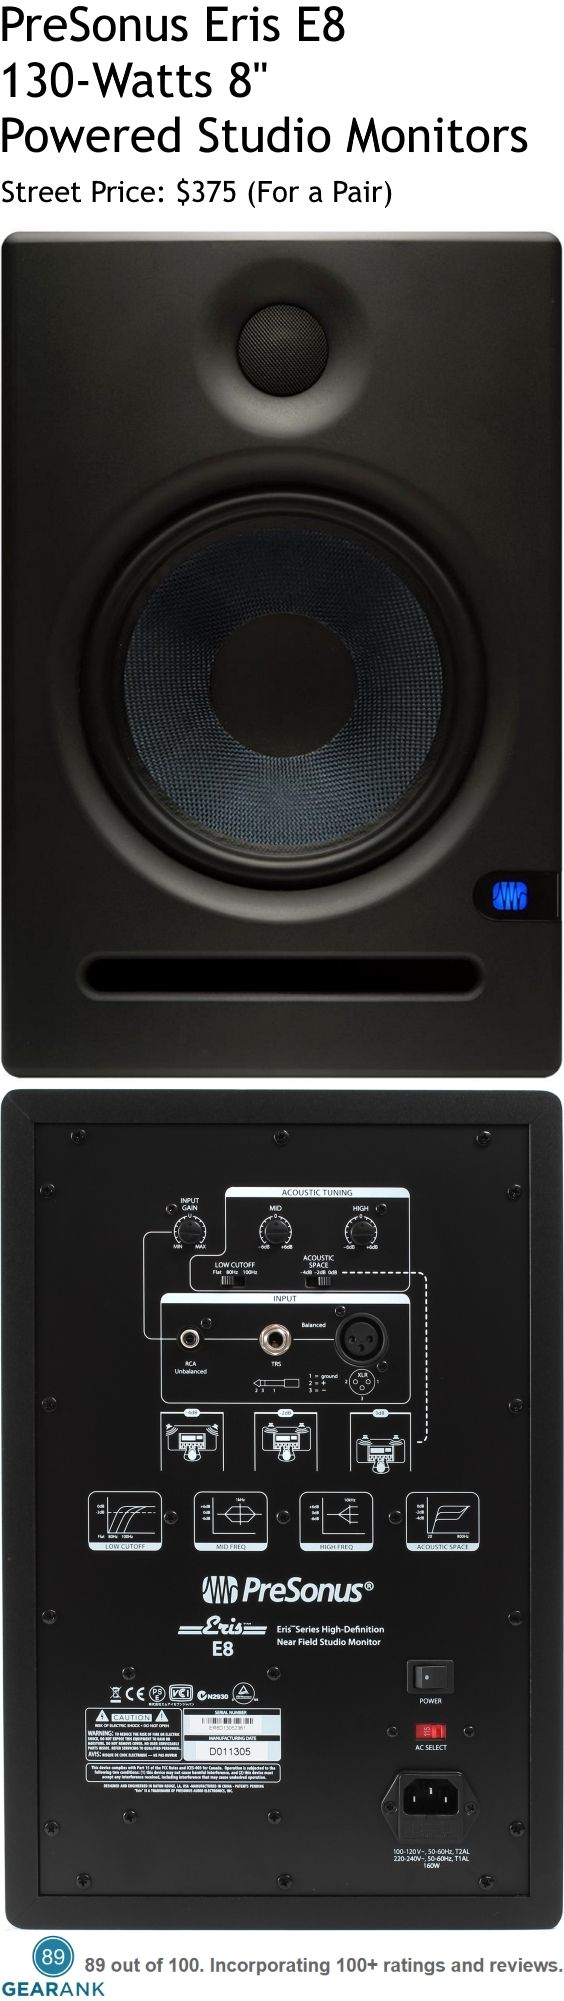 "PreSonus Eris E8 130W 8"" Powered Studio Monitors.  Inputs: 1- Balanced XLR, 1- Balanced ¼"" TRS, 1- Unbalanced RCA.  Frequency Response: 35 Hz - 22 kHz.  Crossover Frequency: 2.2 kHz. LF Amplifier Power: 75W. HF Amplifier Power: 65W.  For a Detailed Guide to Studio Monitors - Under $300 up to $1000 see https://www.gearank.com/guides/best-studio-monitors"